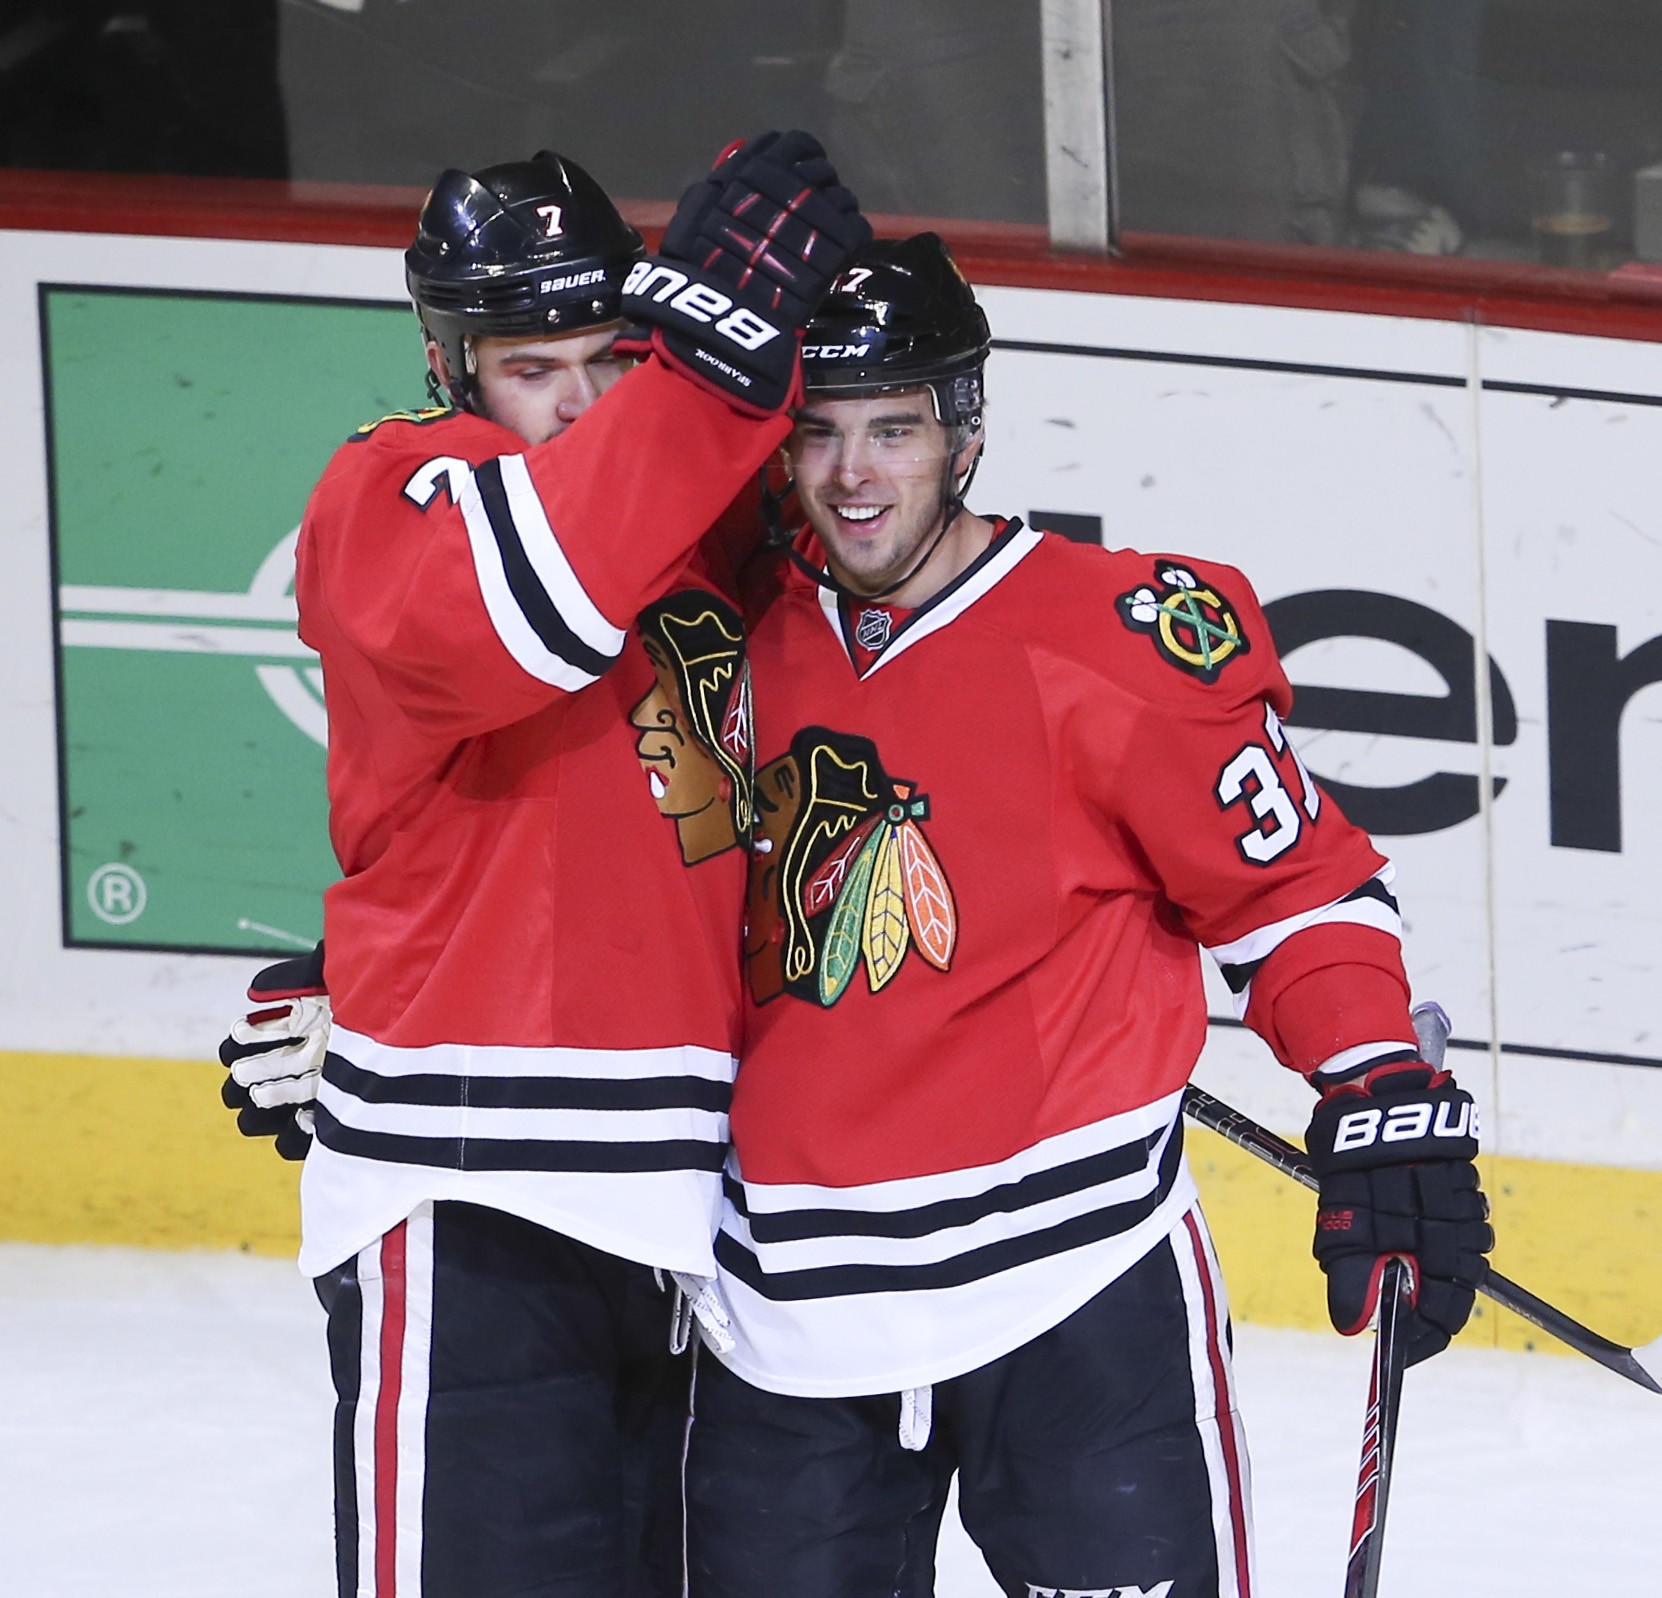 Brandon Pirri (37) celebrates his goal with Brent Seabrook against the Maple Leafs.